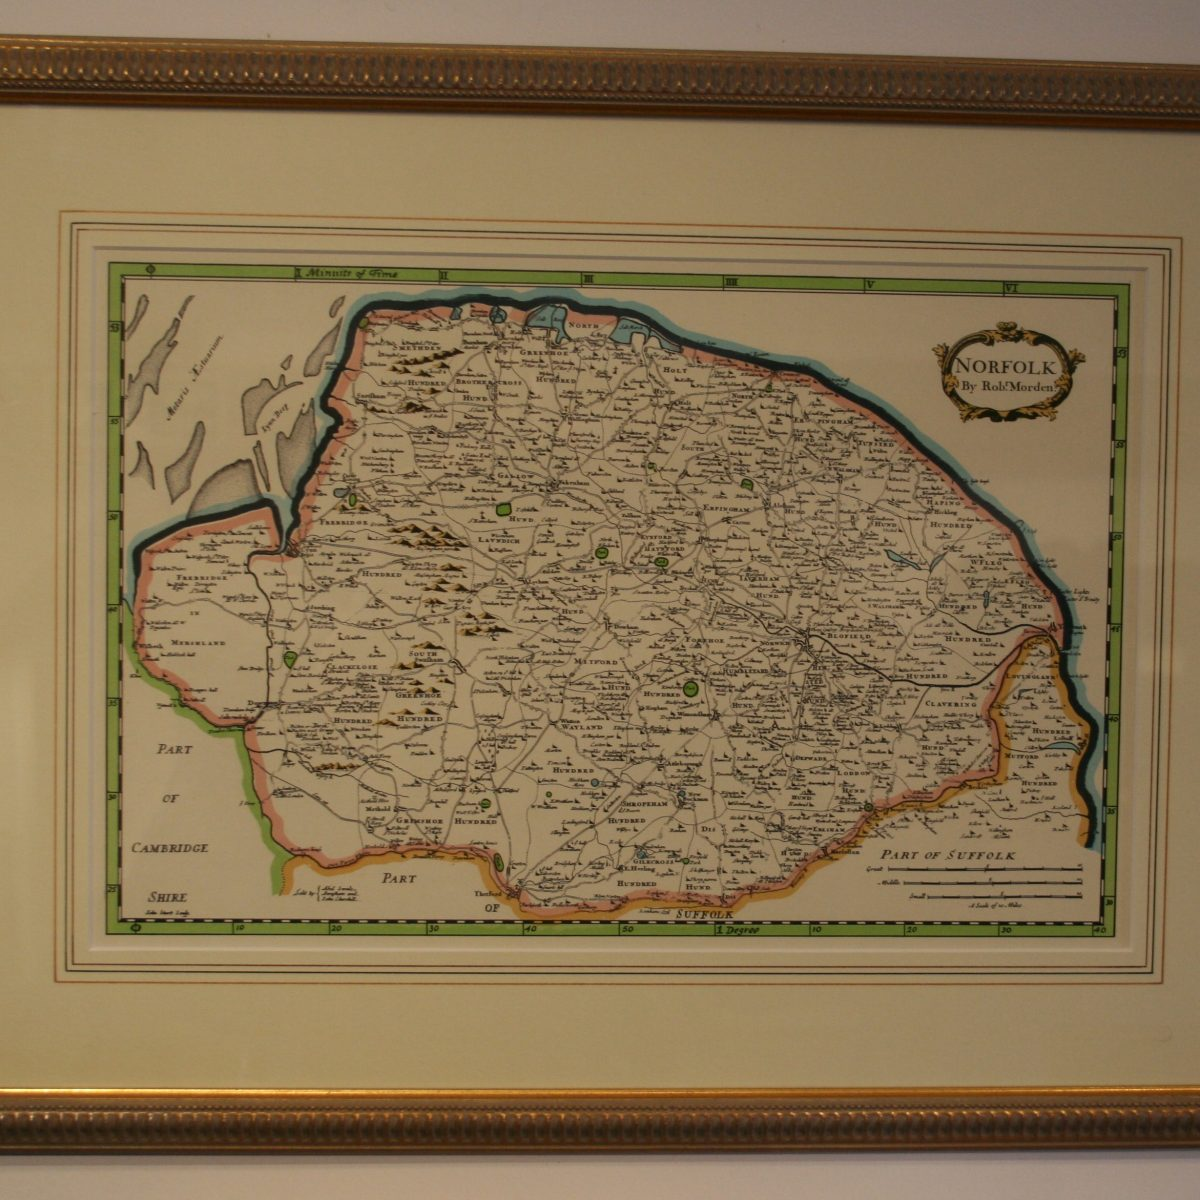 coloured print of Norfolk/williamsantiques